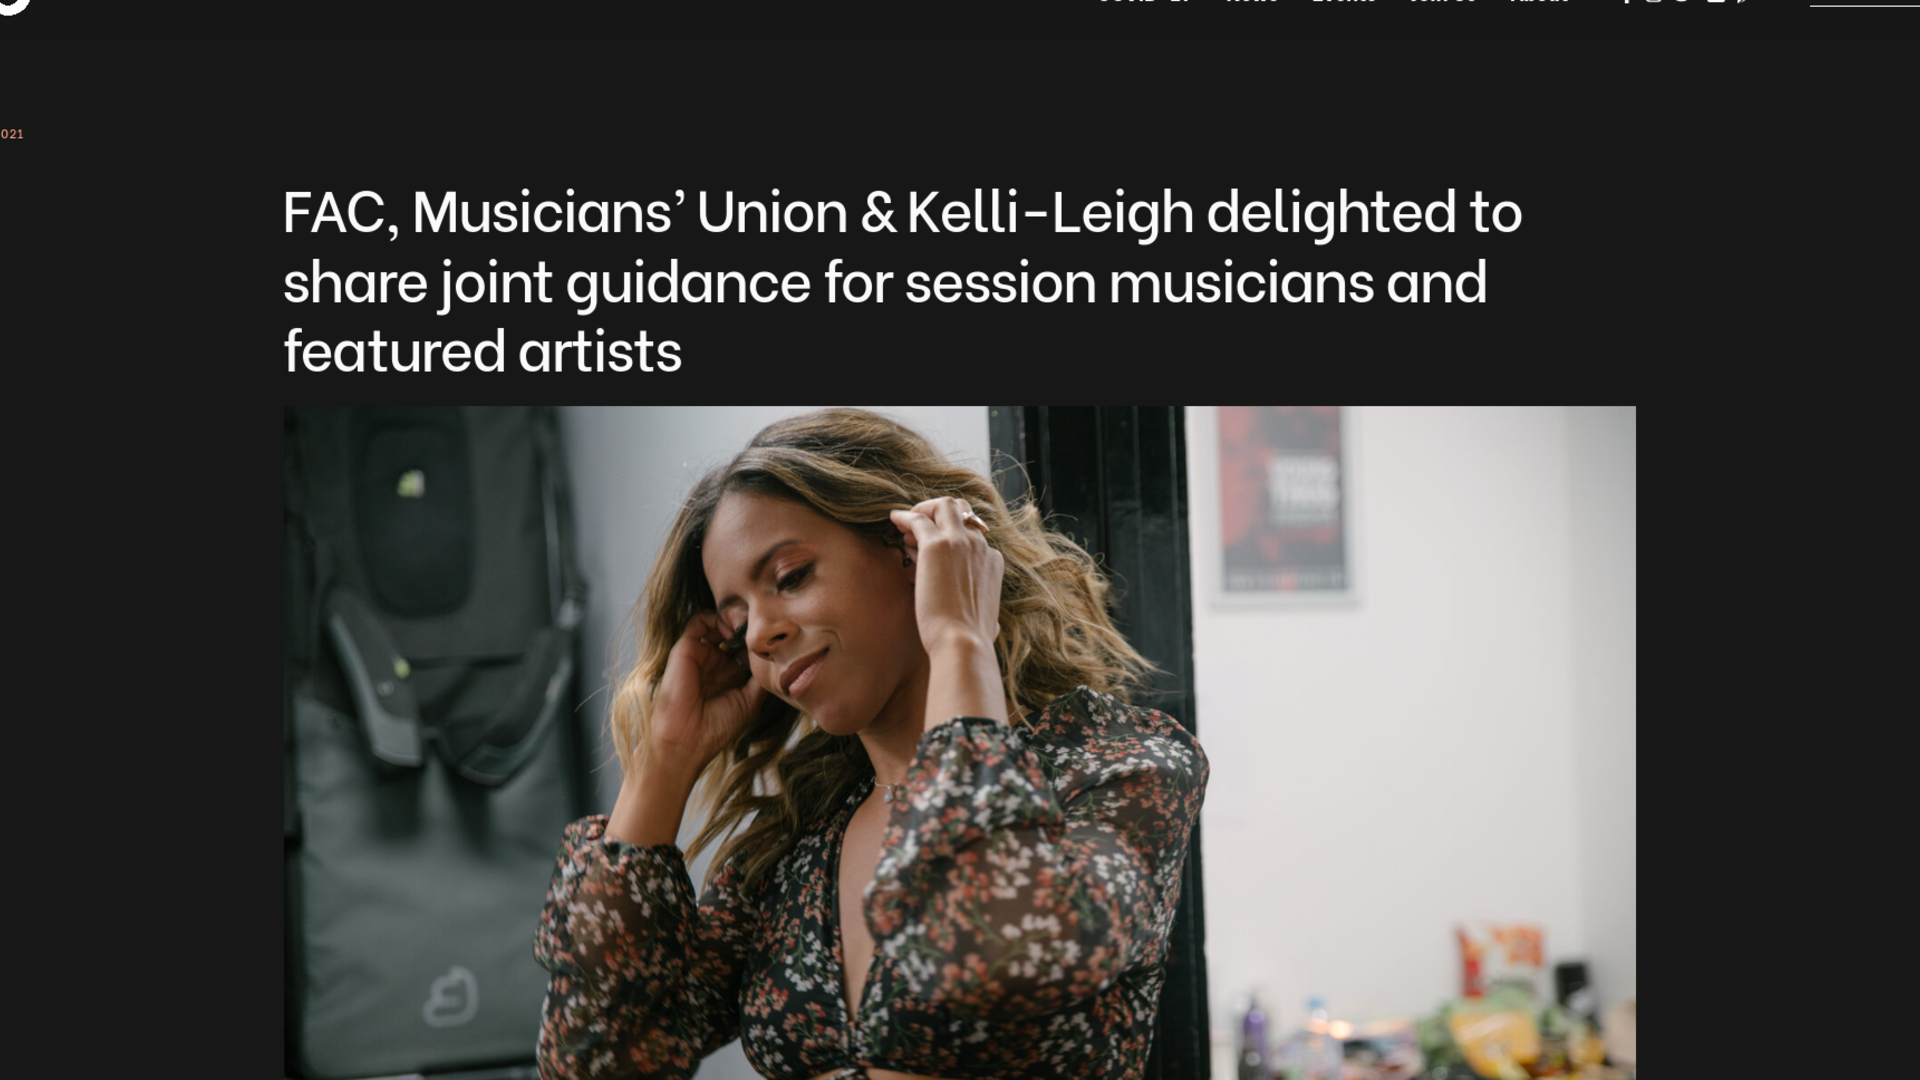 Fairness Rocks News FAC, Musicians' Union & Kelli-Leigh delighted to share joint guidance for session musicians and featured artists